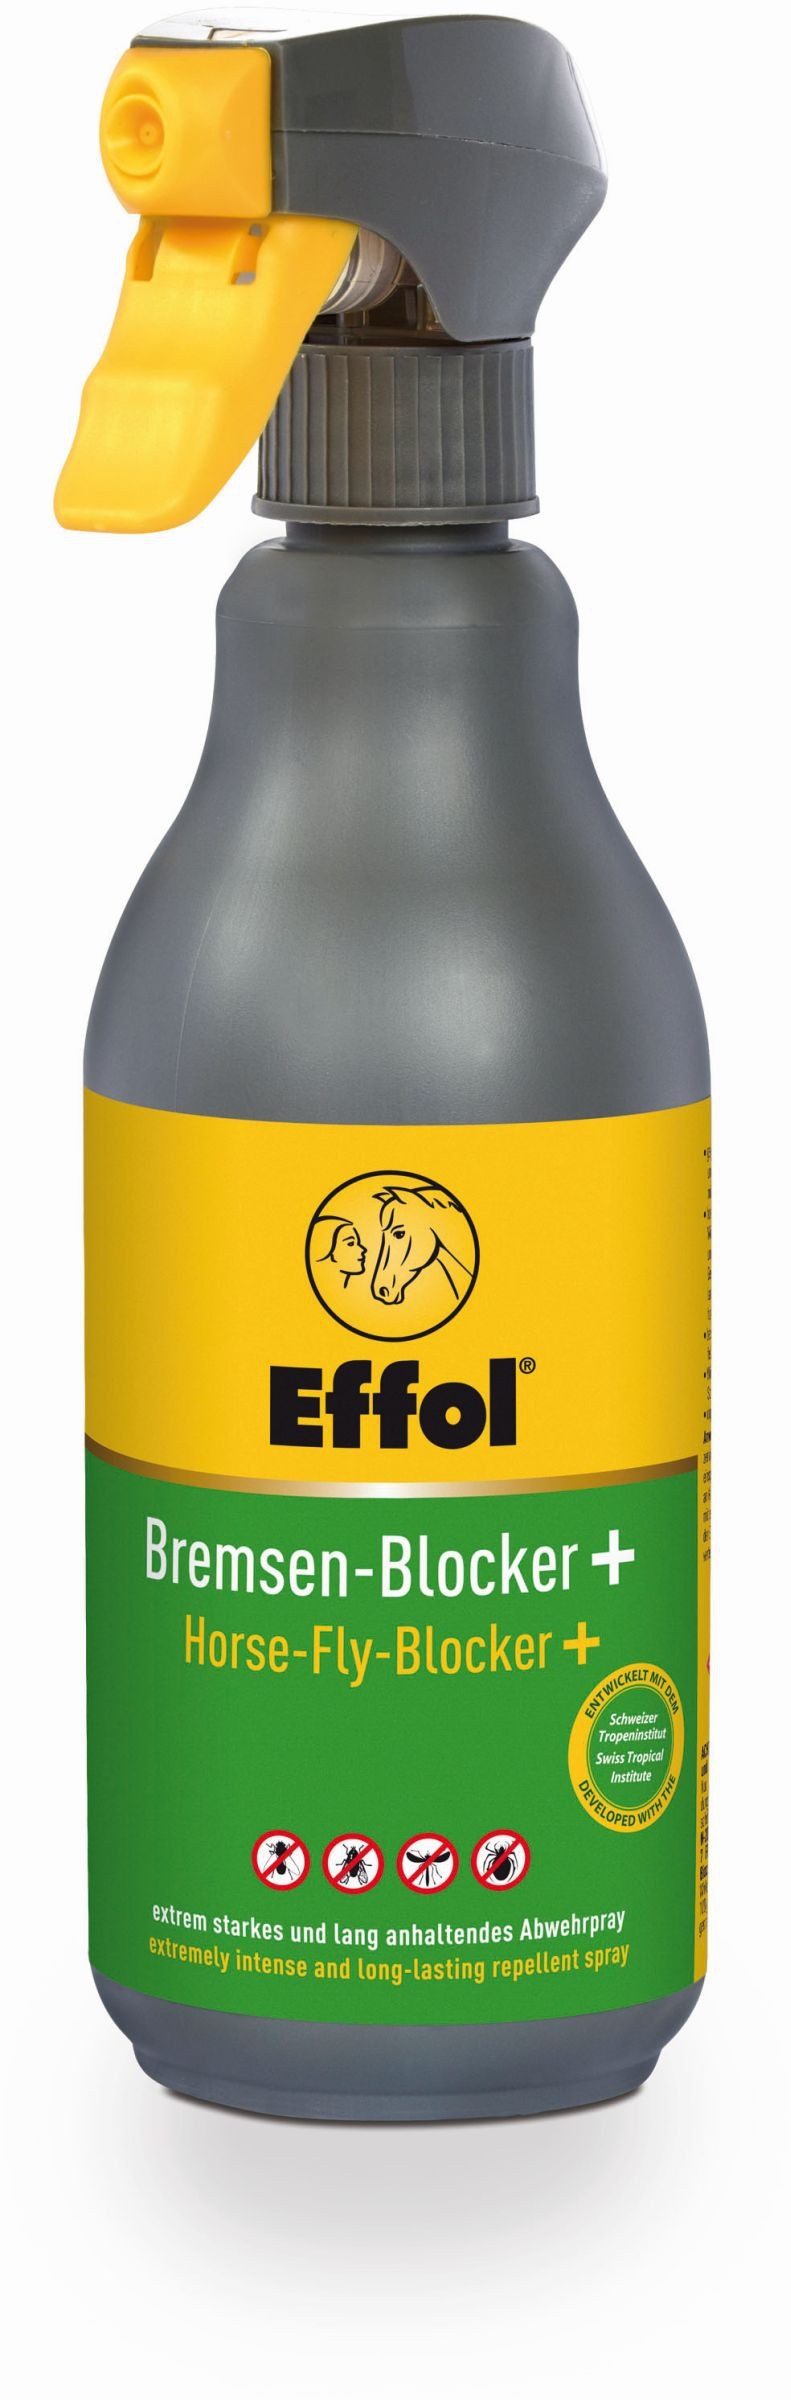 effol bremsen blocker 500 ml spr hflasche online kaufen. Black Bedroom Furniture Sets. Home Design Ideas